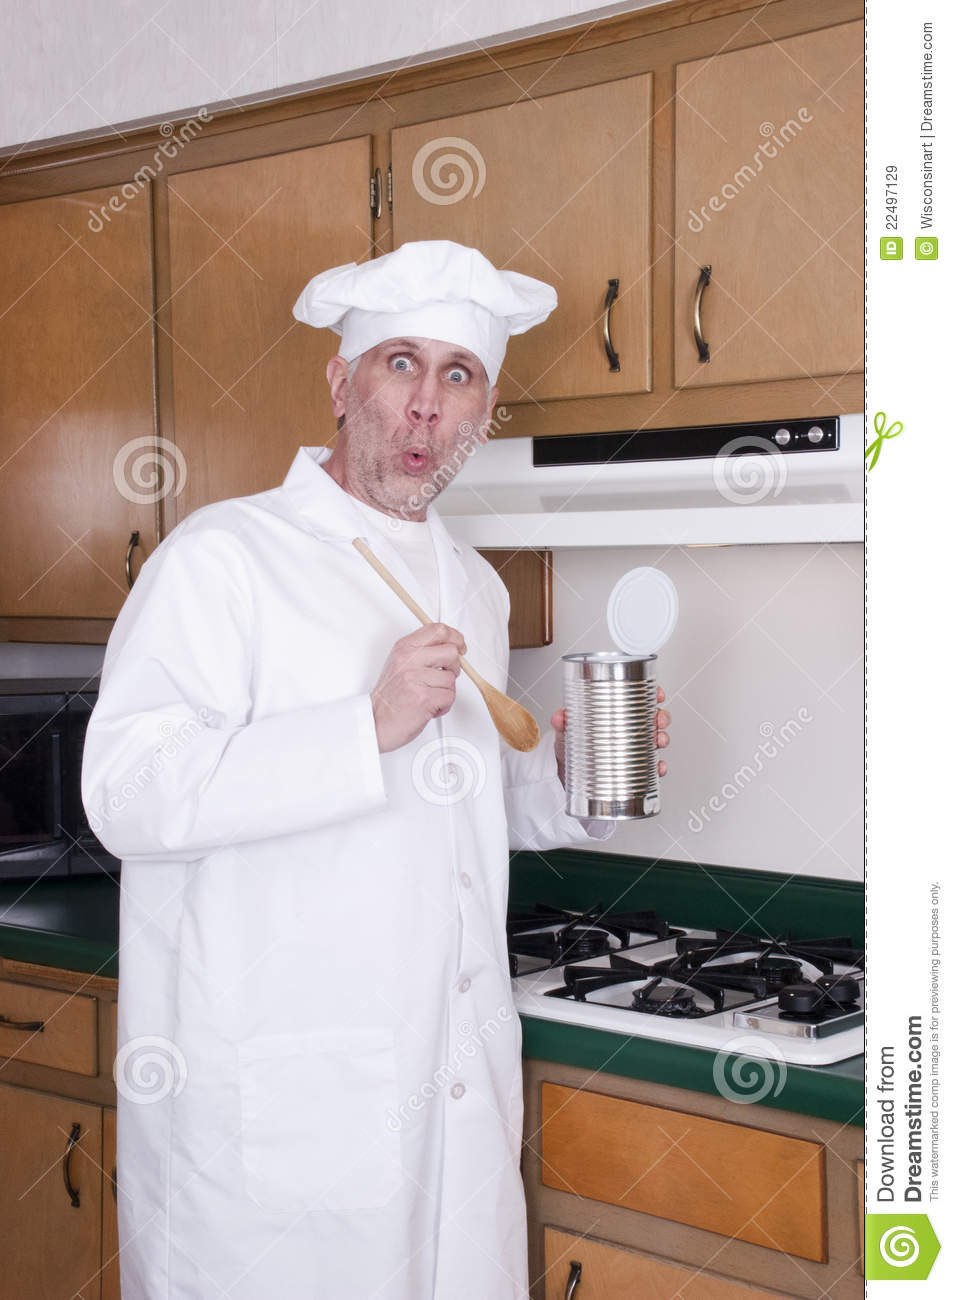 Funny Cook Chef Cooking Out Of Can On Stove Stock Image